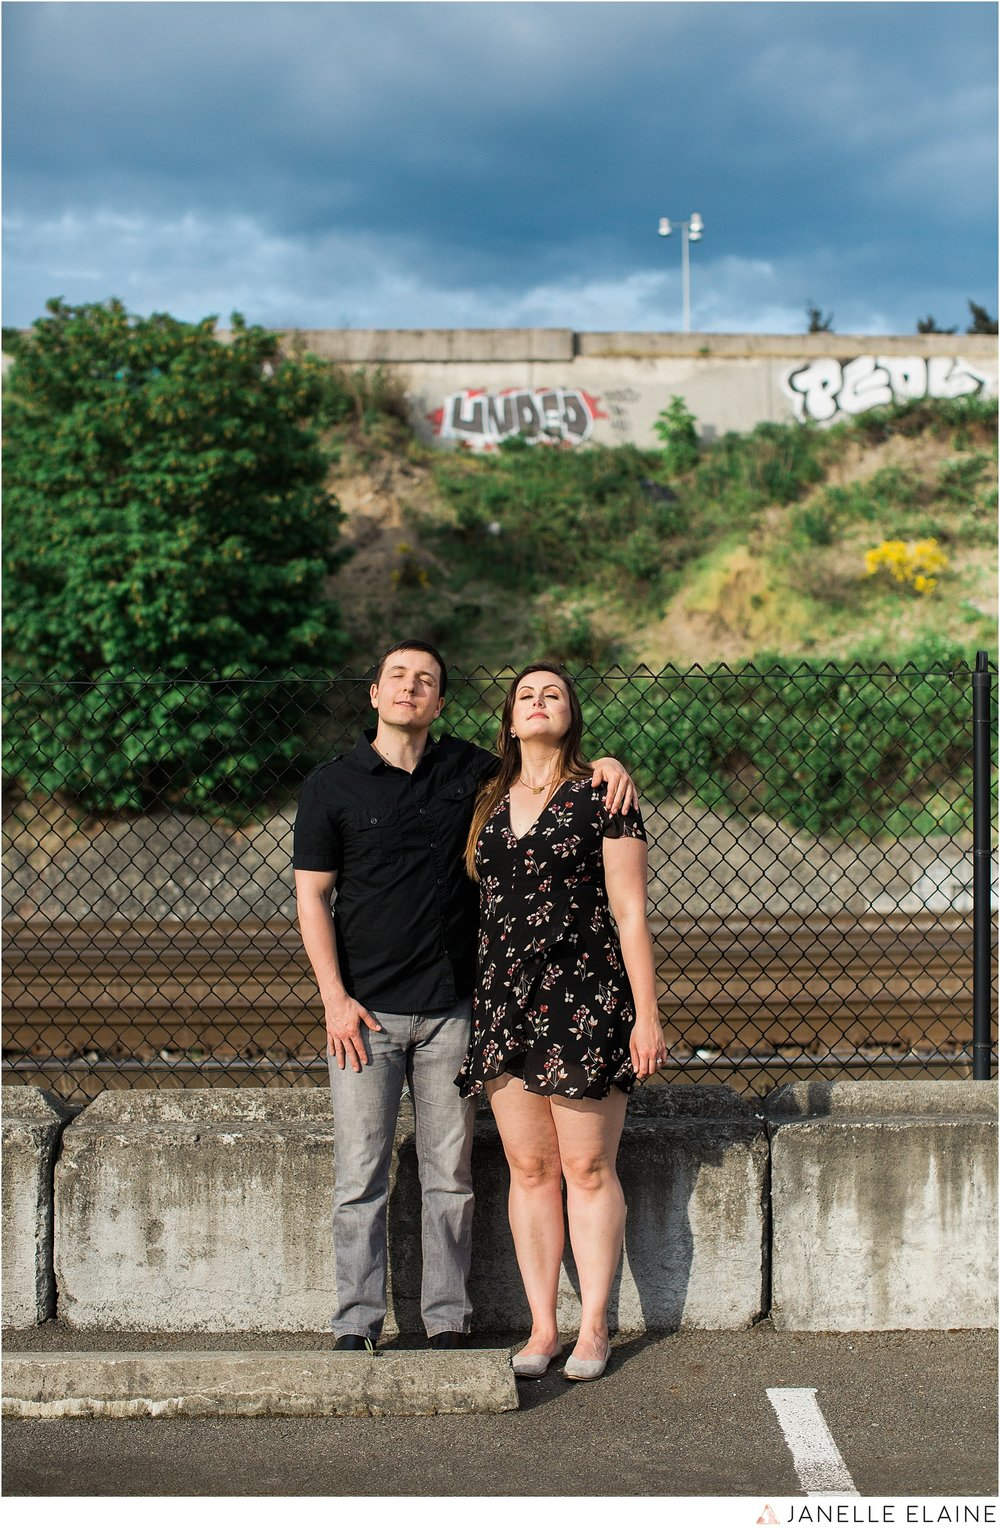 karen ethan-georgetown engagement photos-seattle-janelle elaine photography-112.jpg